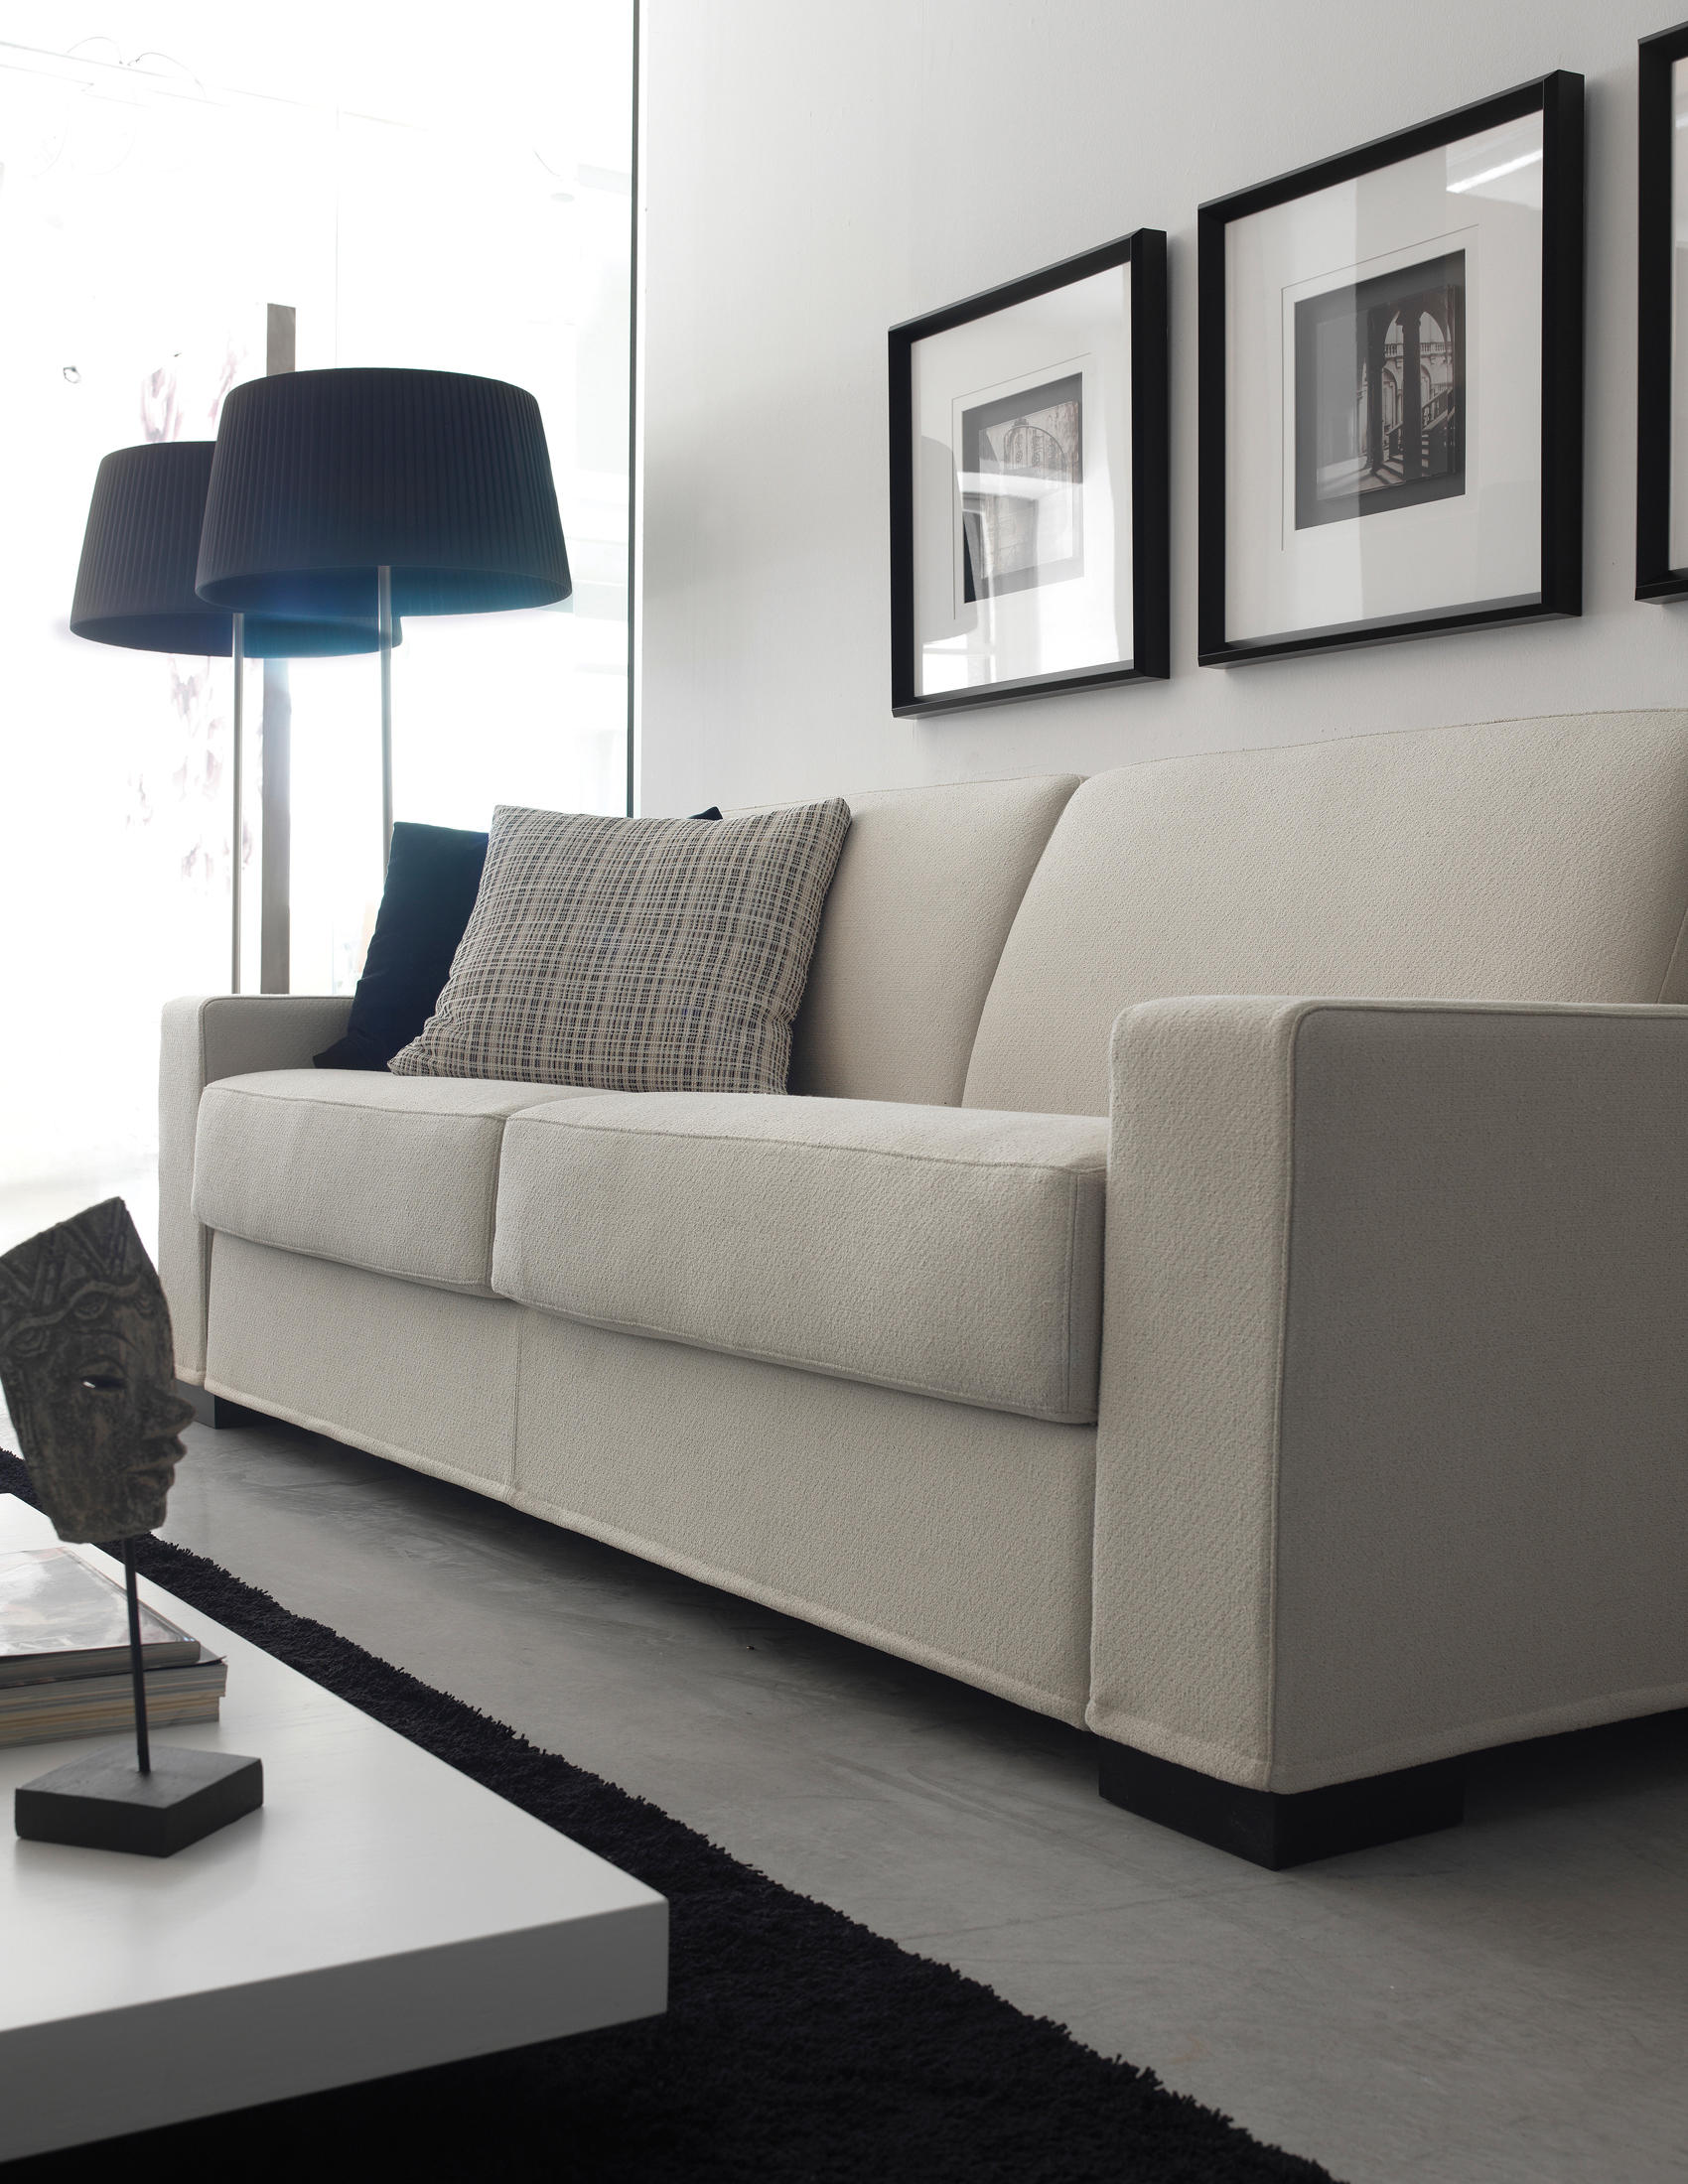 DUKE PONIBILE Sofa beds from Milano Bedding